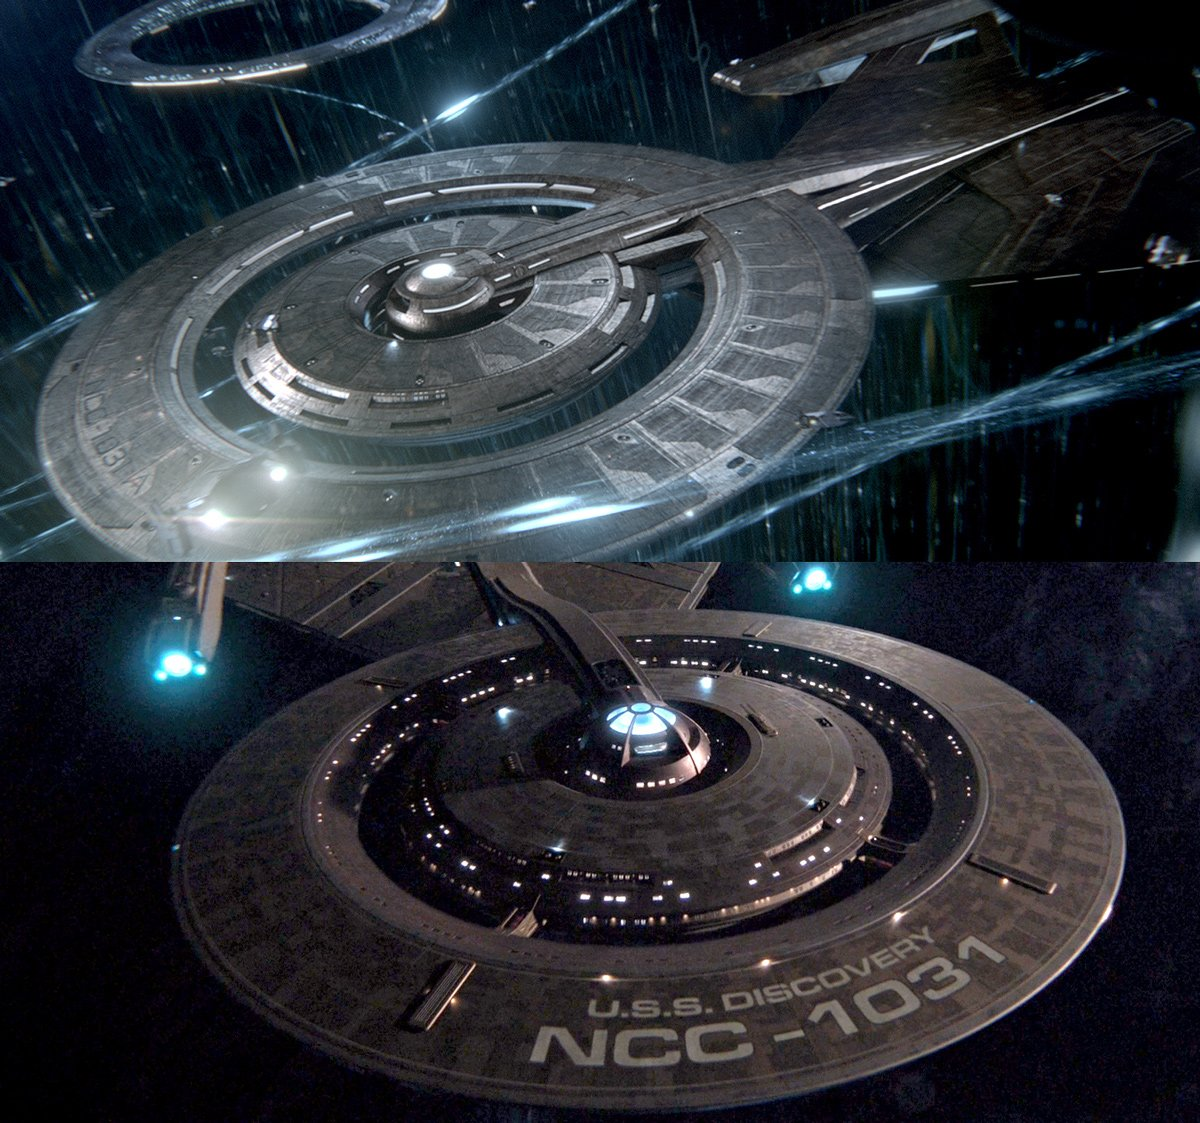 The Discovery gets a host of 32nd century upgrades: enough to justify a new registry number (NCC-1031-A!) to signify the major changes — as well as to potentially hide the ship's time-travel history (banned by the Temporal Accords).  #StarTrek #StarTrekDiscovery https://t.co/KC7i9nashe